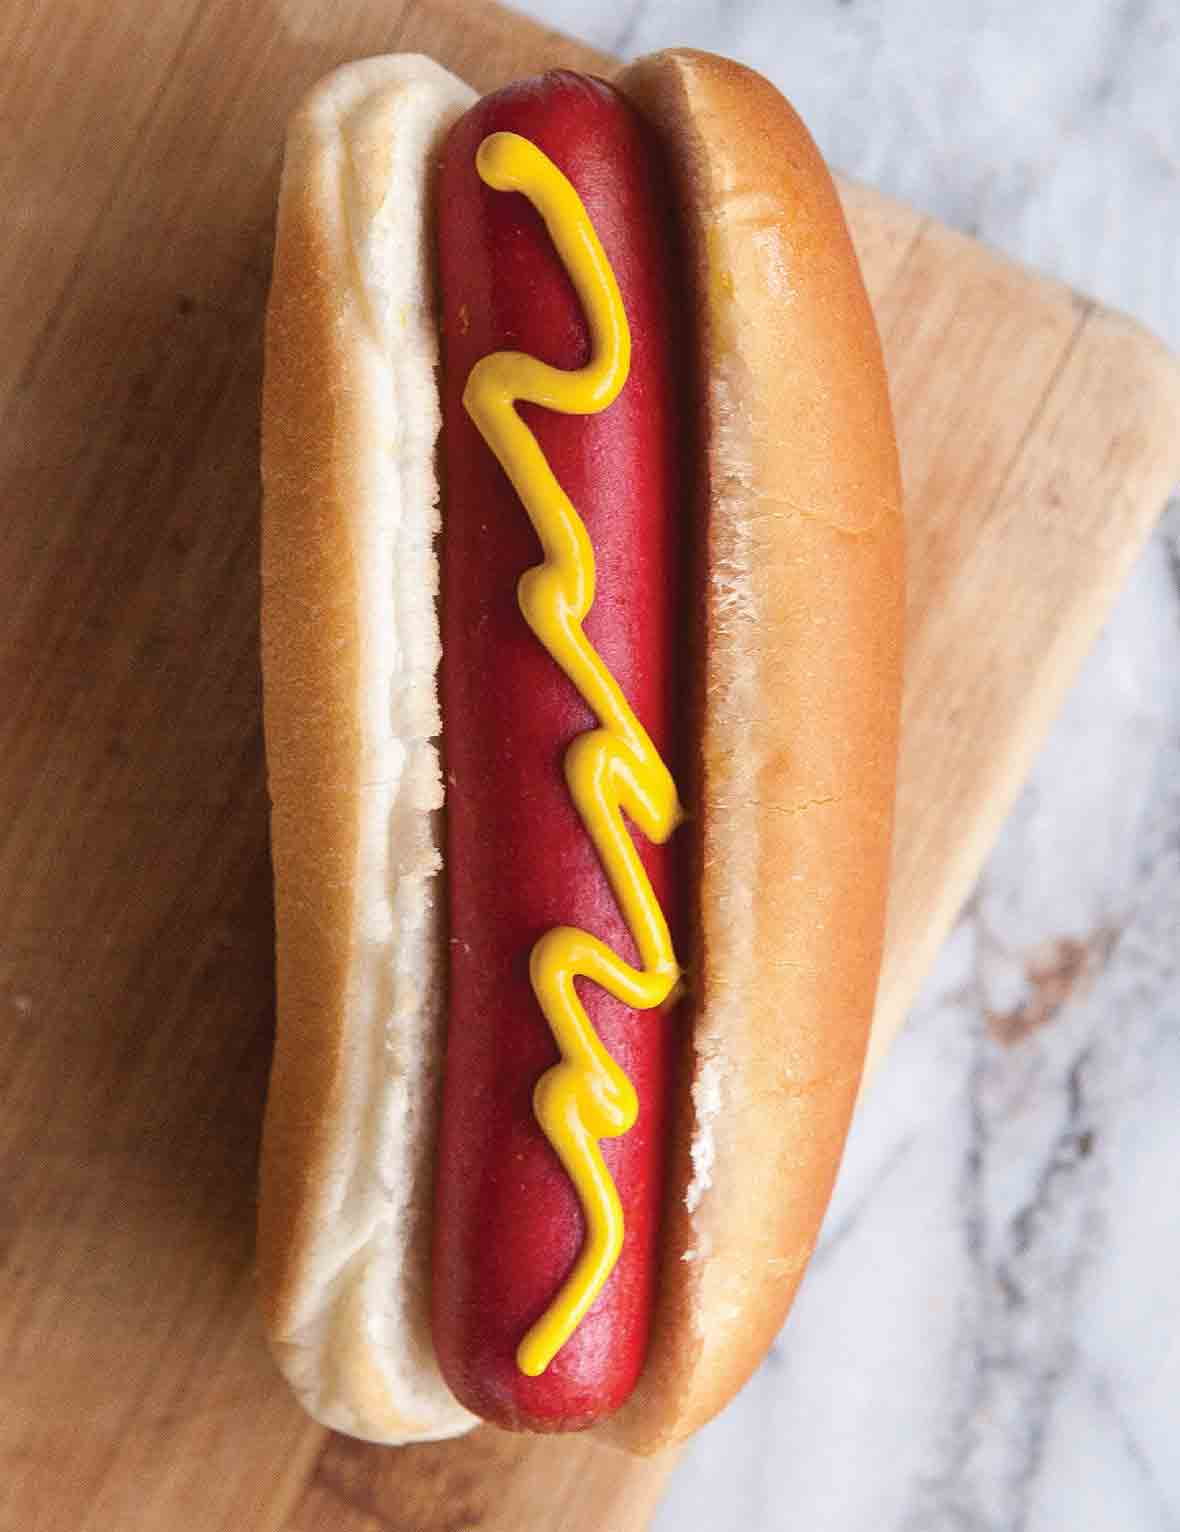 A hot dog in a white bun with a squiggle of mustard on a wooden board.